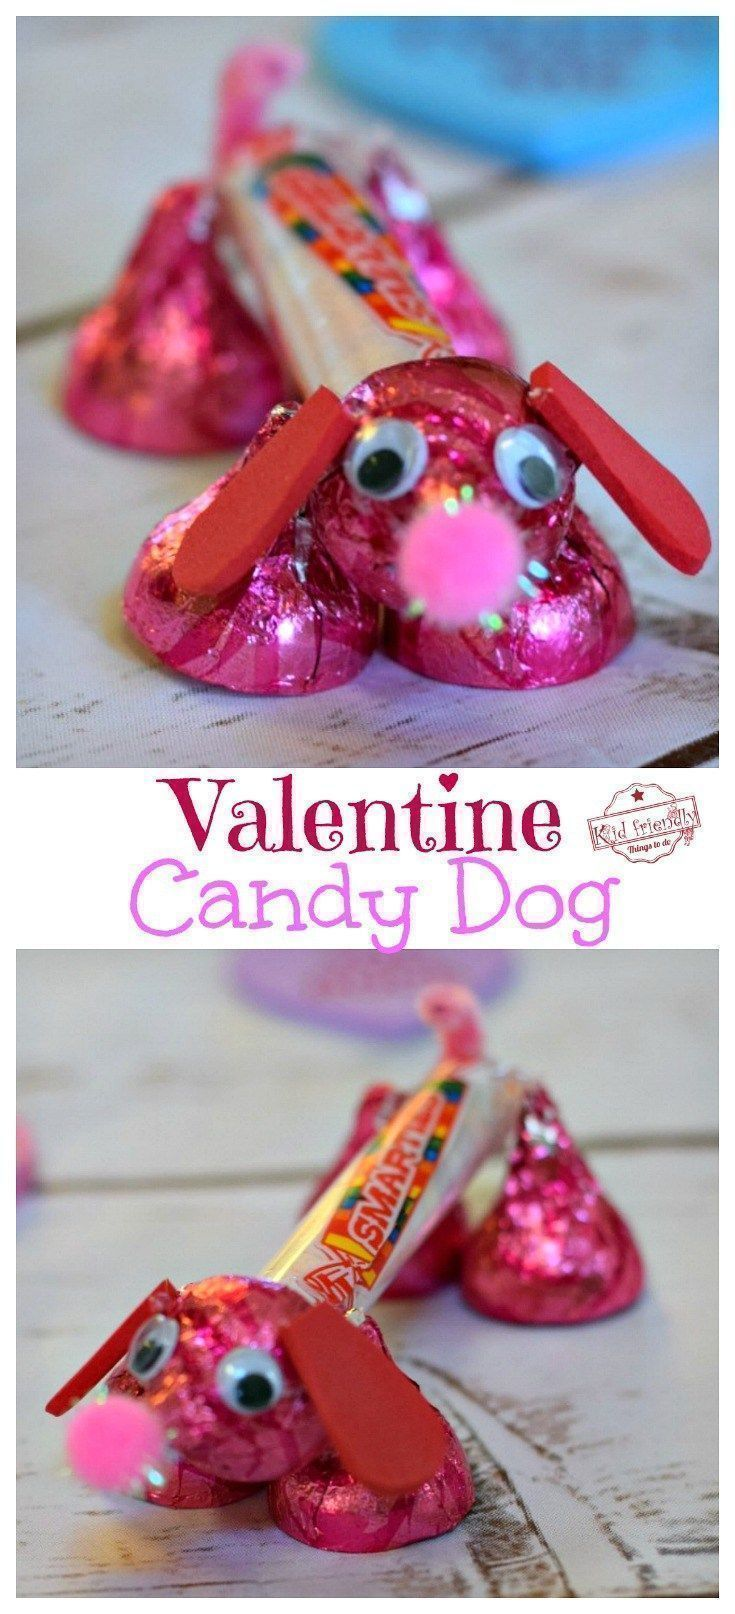 Make a Candy Dog for a Fun Kid's Valentine's Day Craft and Treat Valentine's Can...